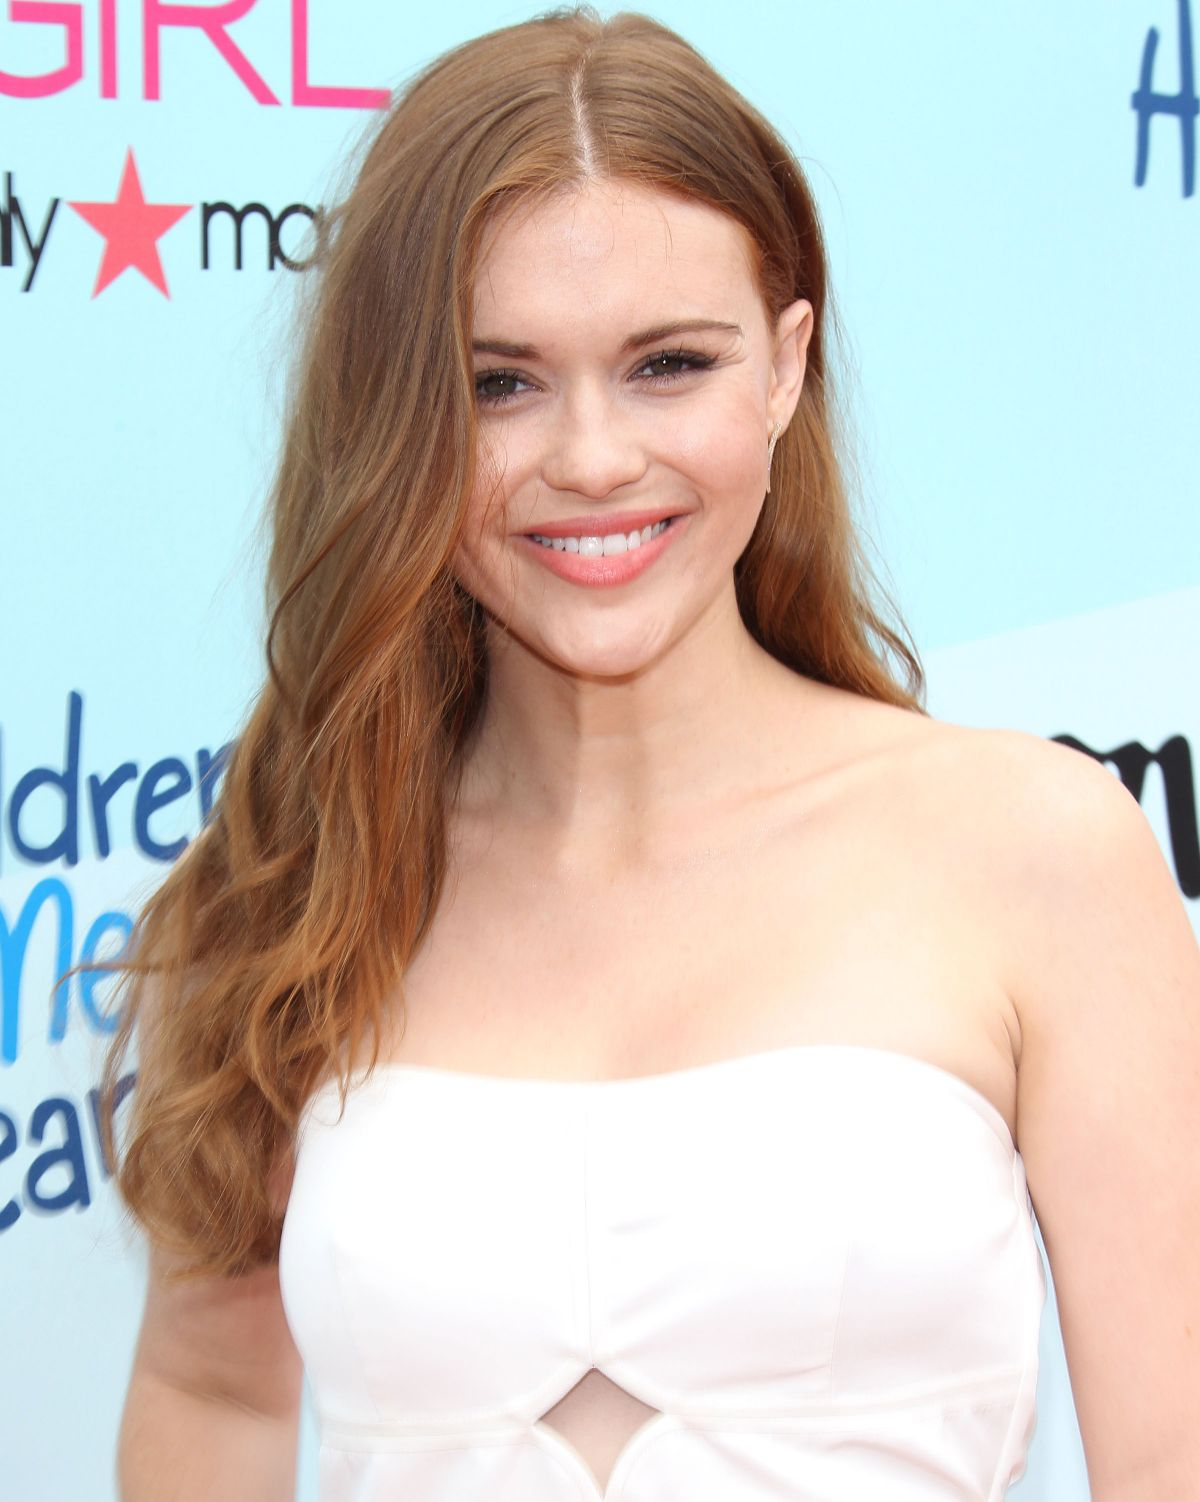 The 31-year old daughter of father (?) and mother(?), 166 cm tall Holland Roden in 2018 photo